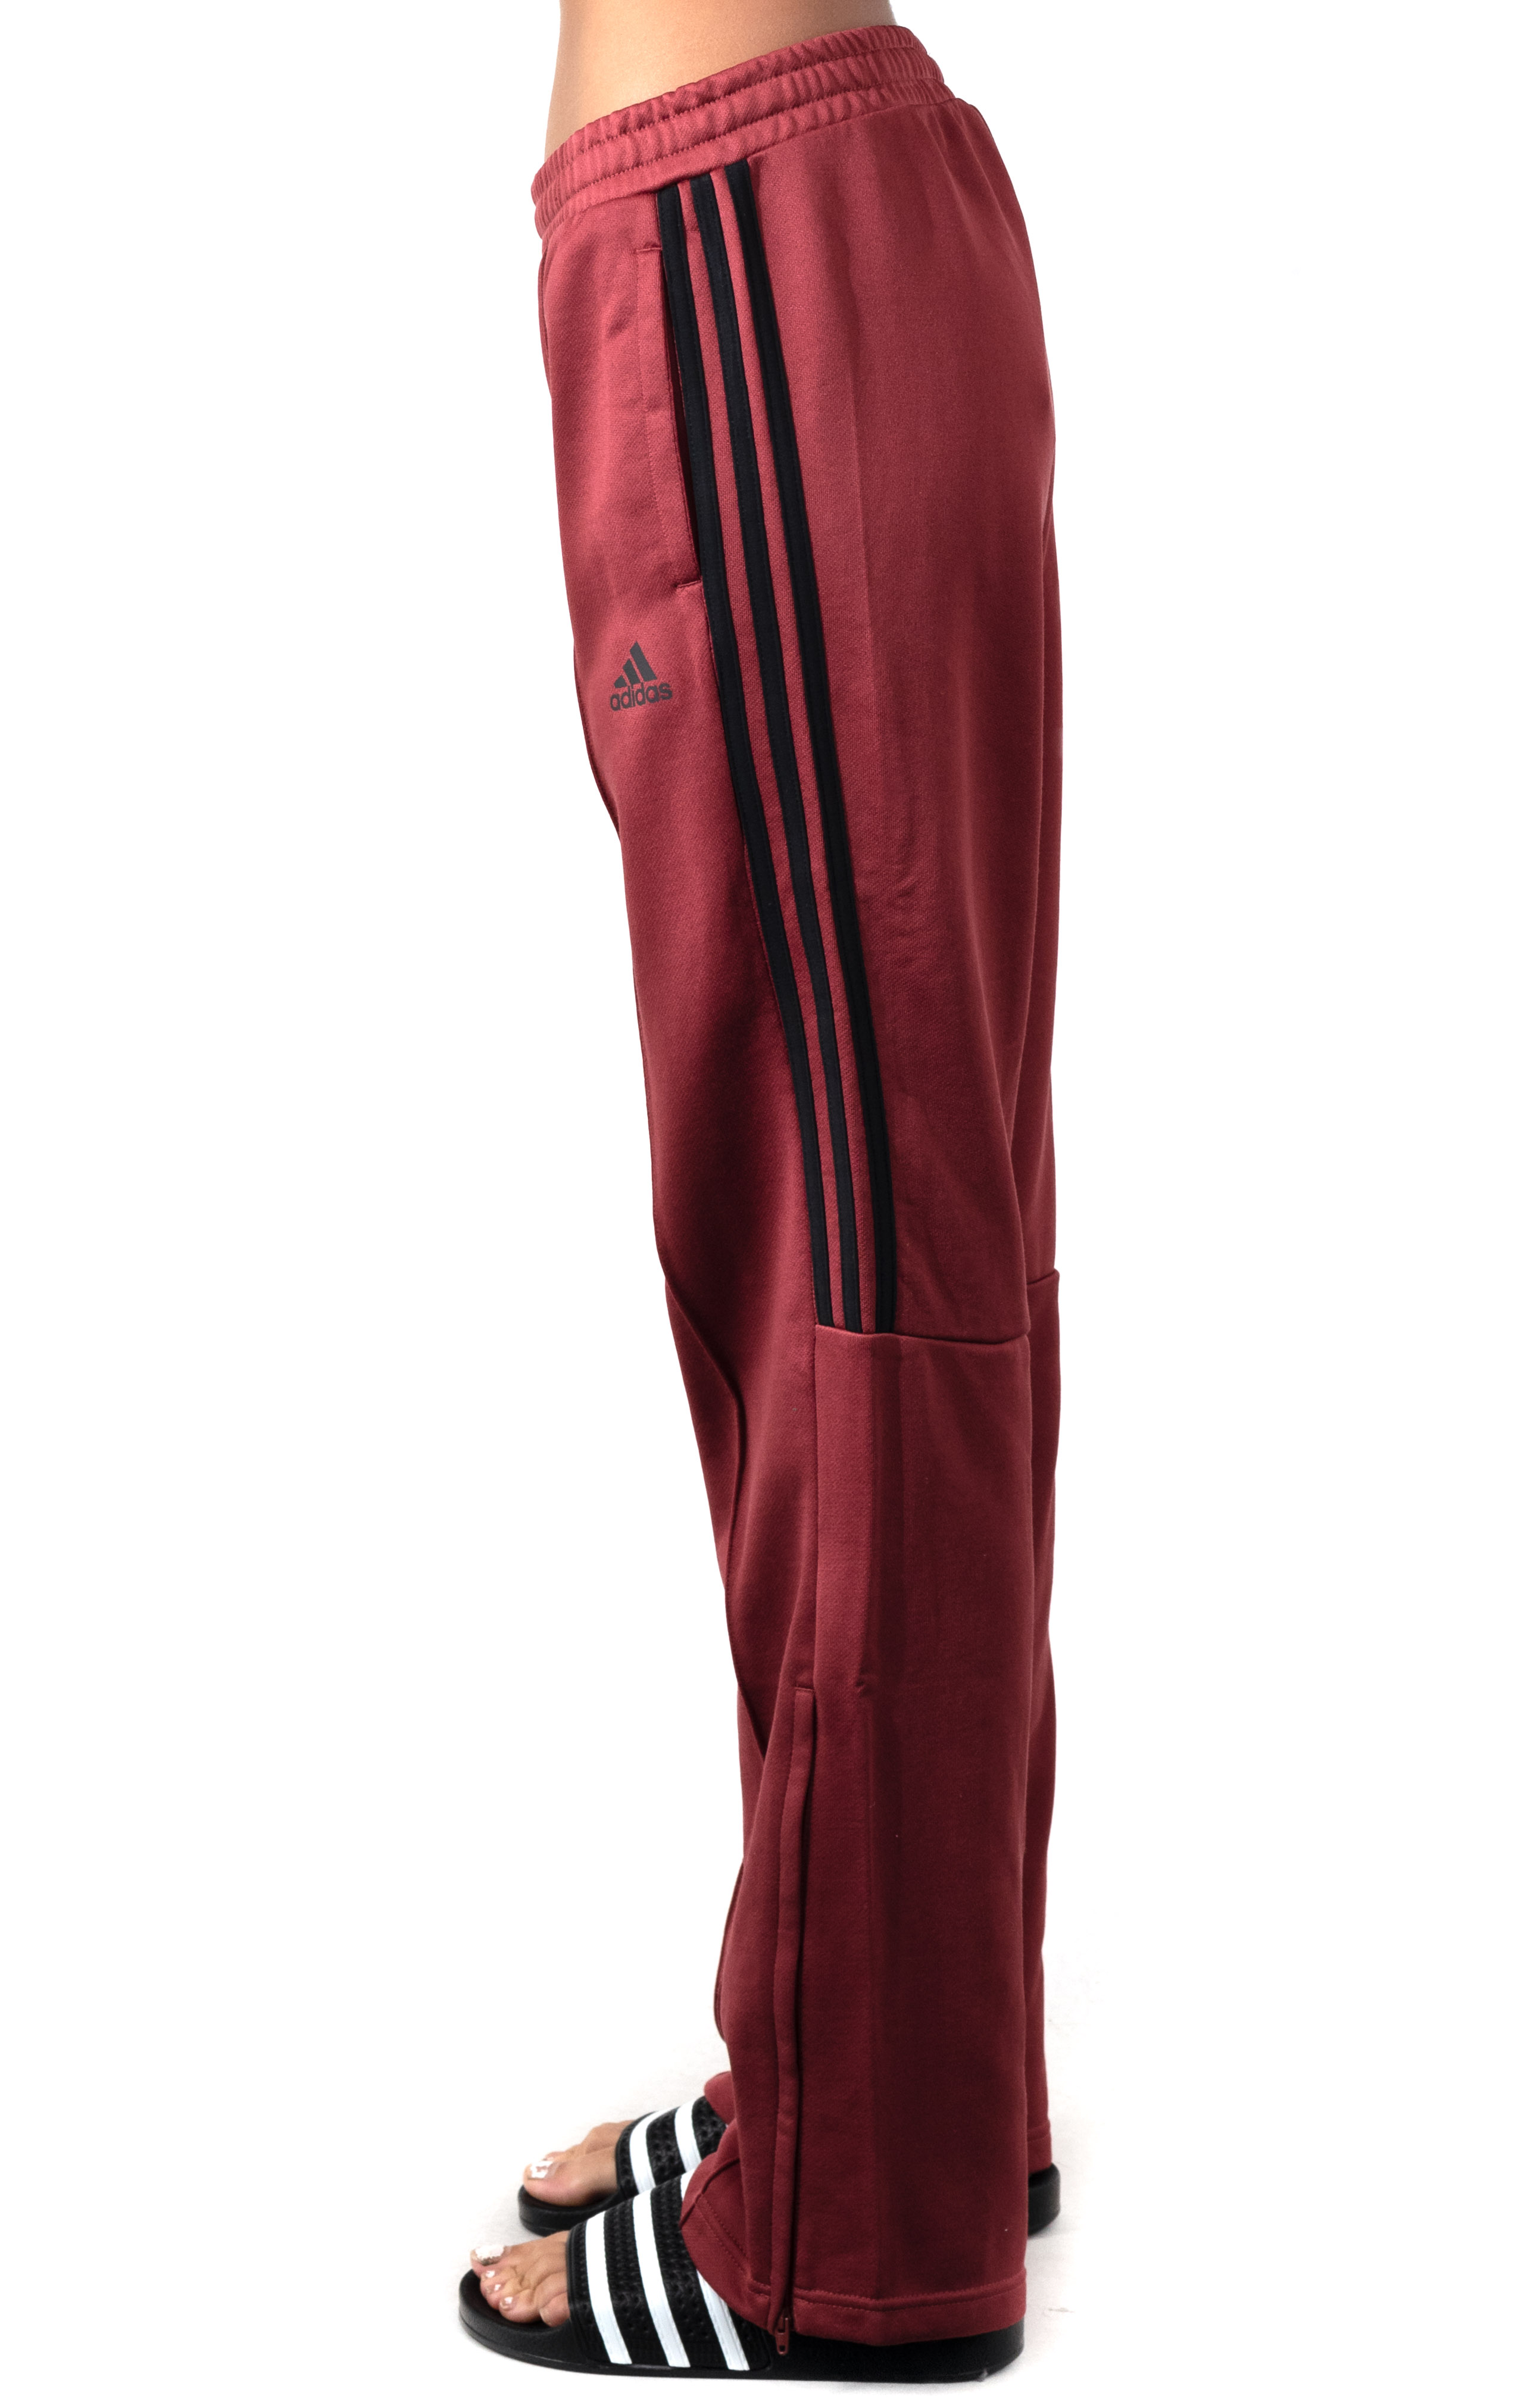 (GD9030) New Authentic Wide Leg Pants - Legacy Red 2